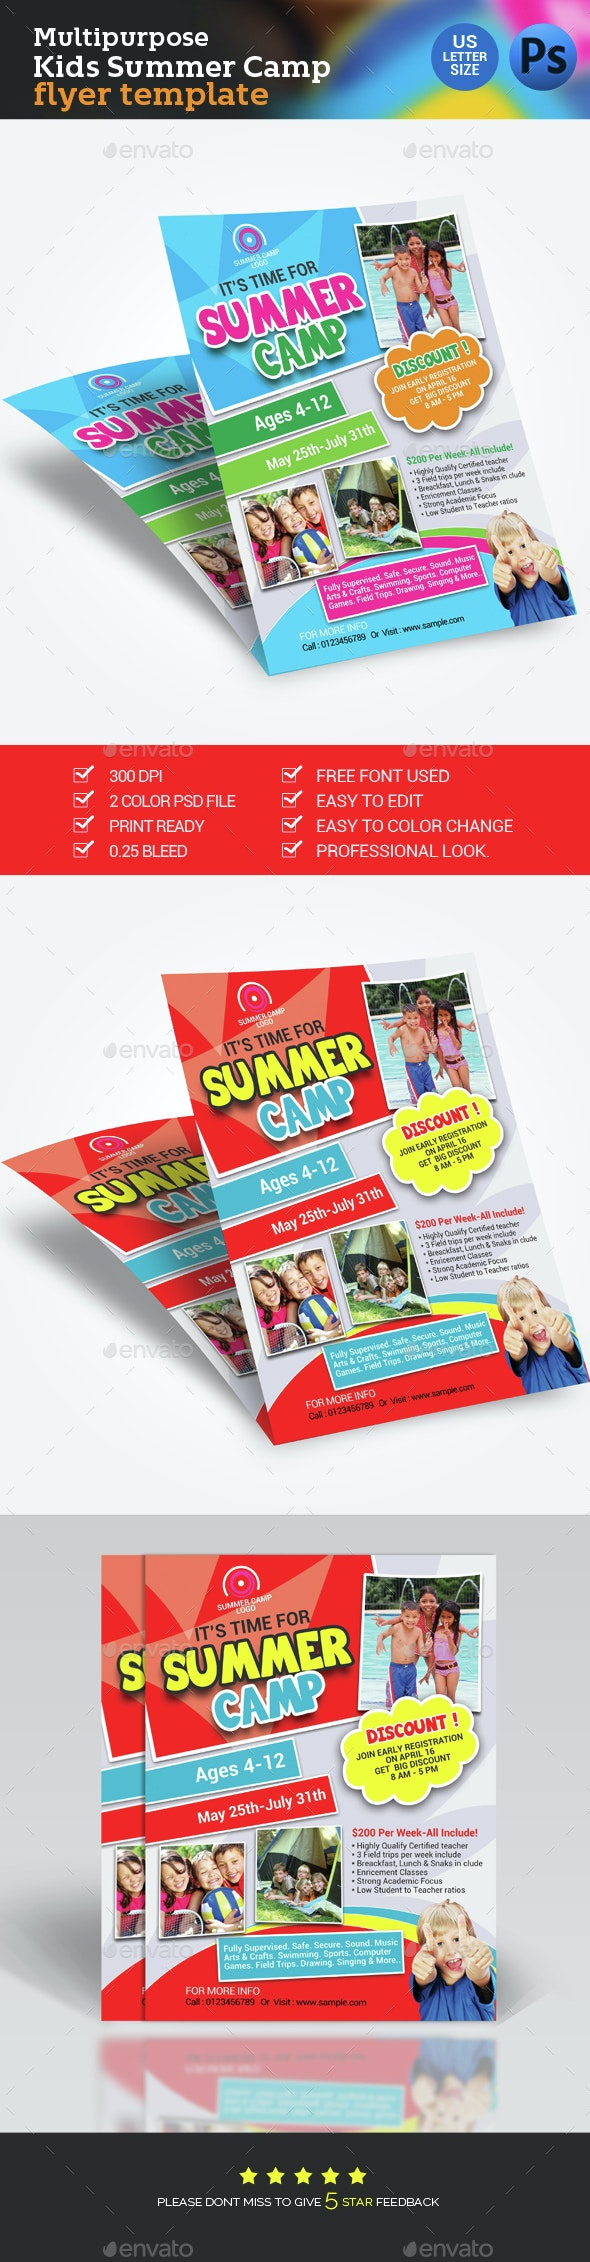 Summer Camp Flyer - Flyers Print Templates